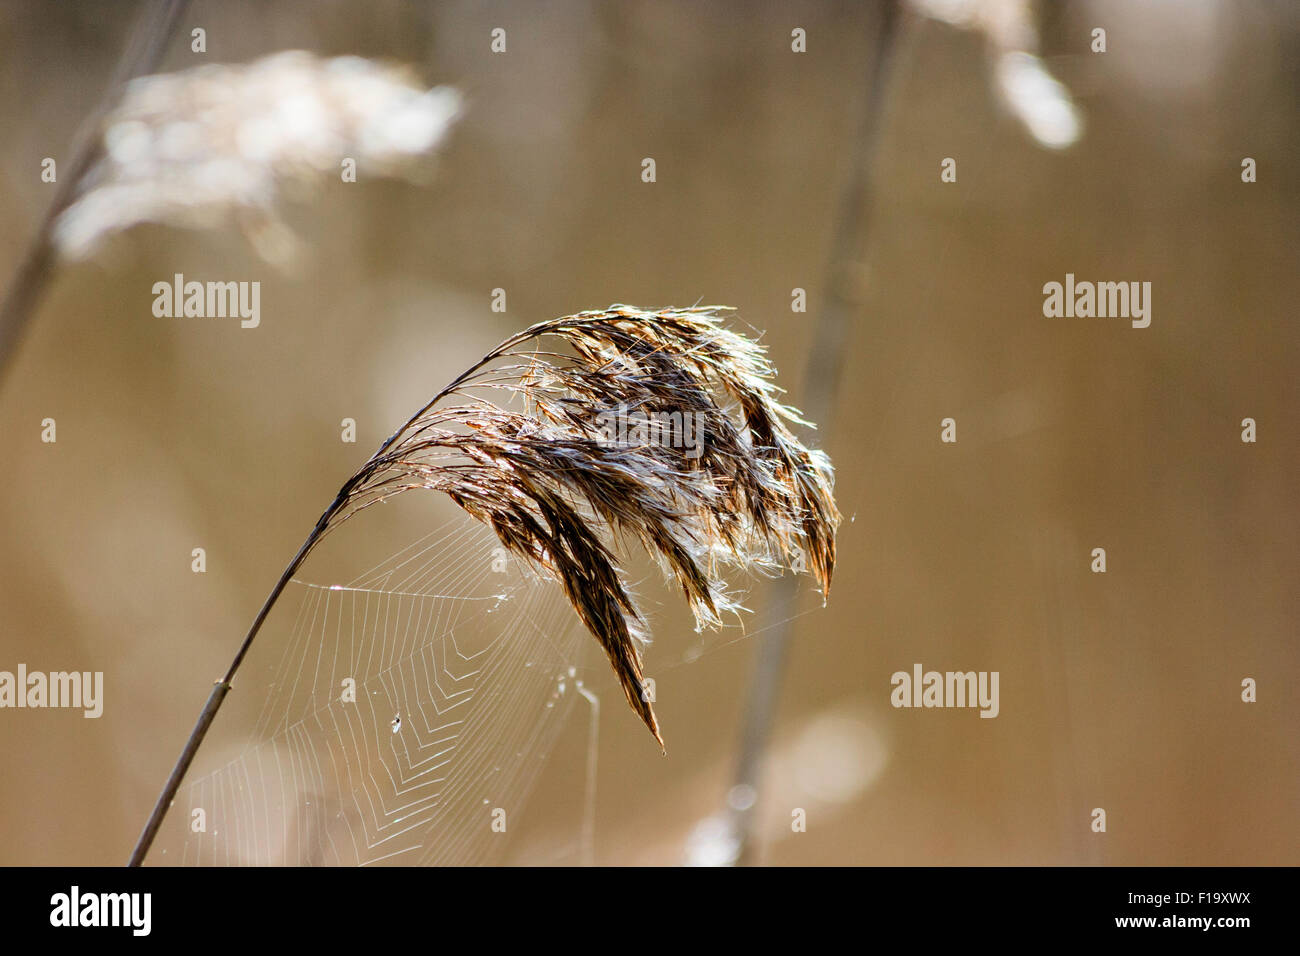 Flowering marsh grass, back-lit with spider web on stem and flower, catkin - Stock Image